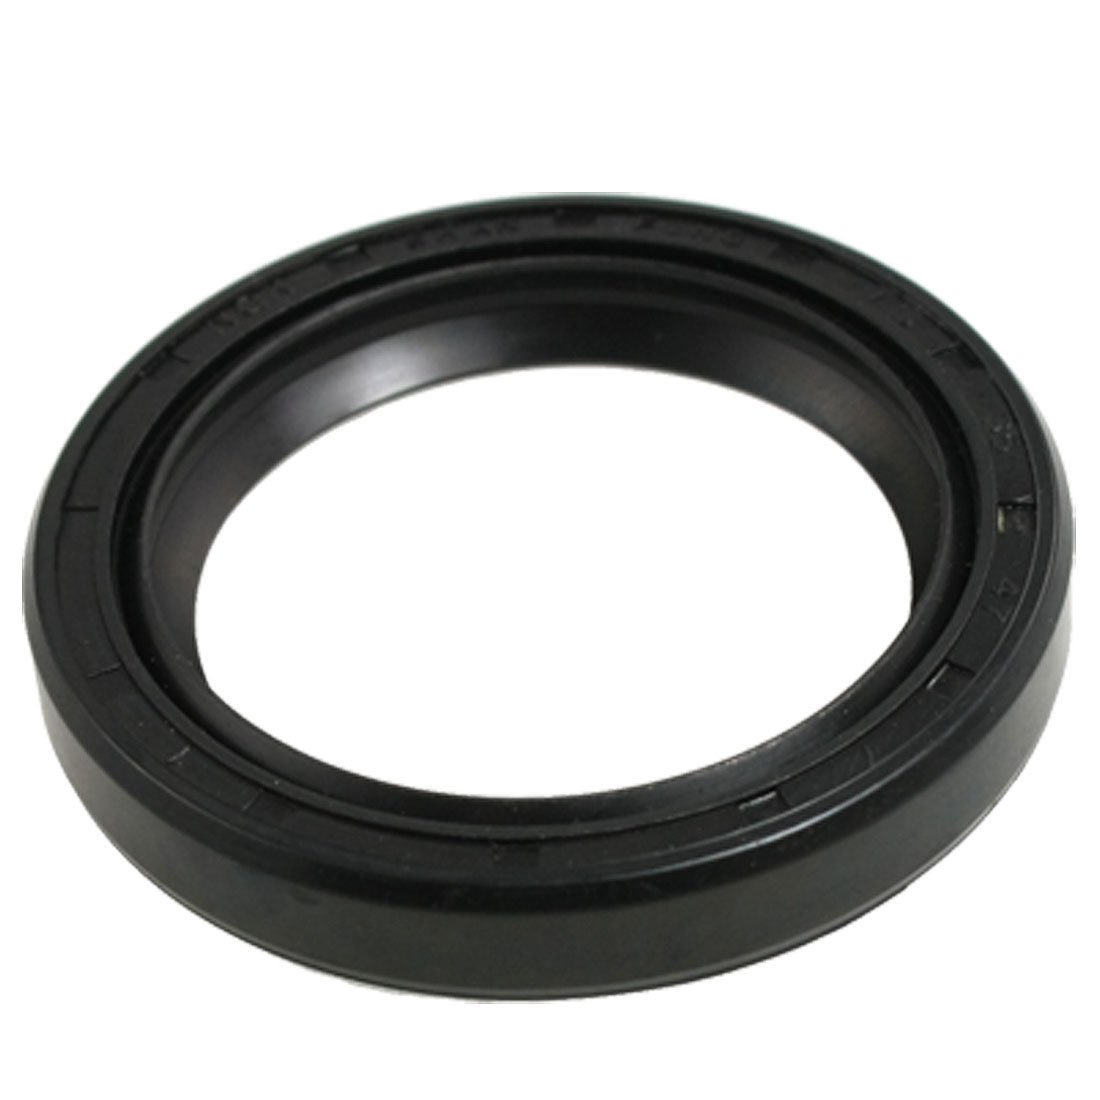 uxcell Steel Spring Double Lip PU Engine Oil Shaft Seal TC 12mm x 25mm x 5mm